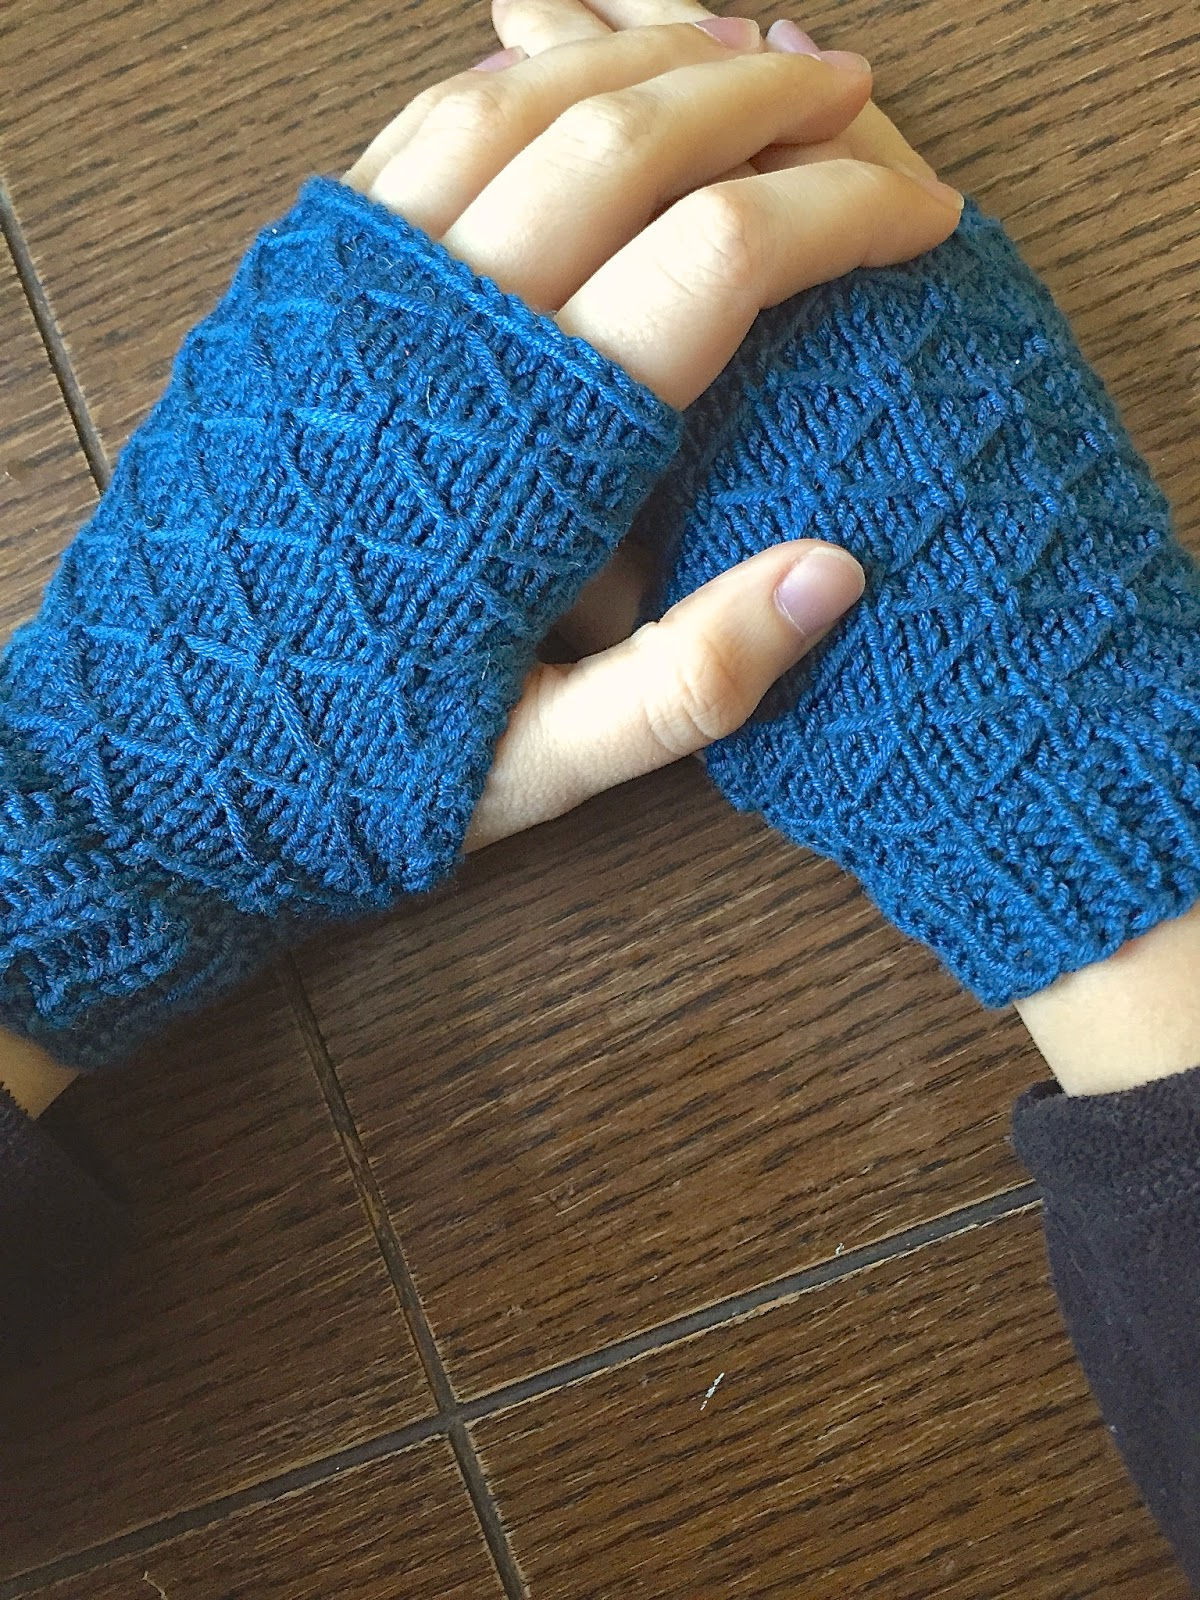 Wrist Warmers Knitting Pattern : Handcrafted Vintage: Lattice Knit Wrist Warmers